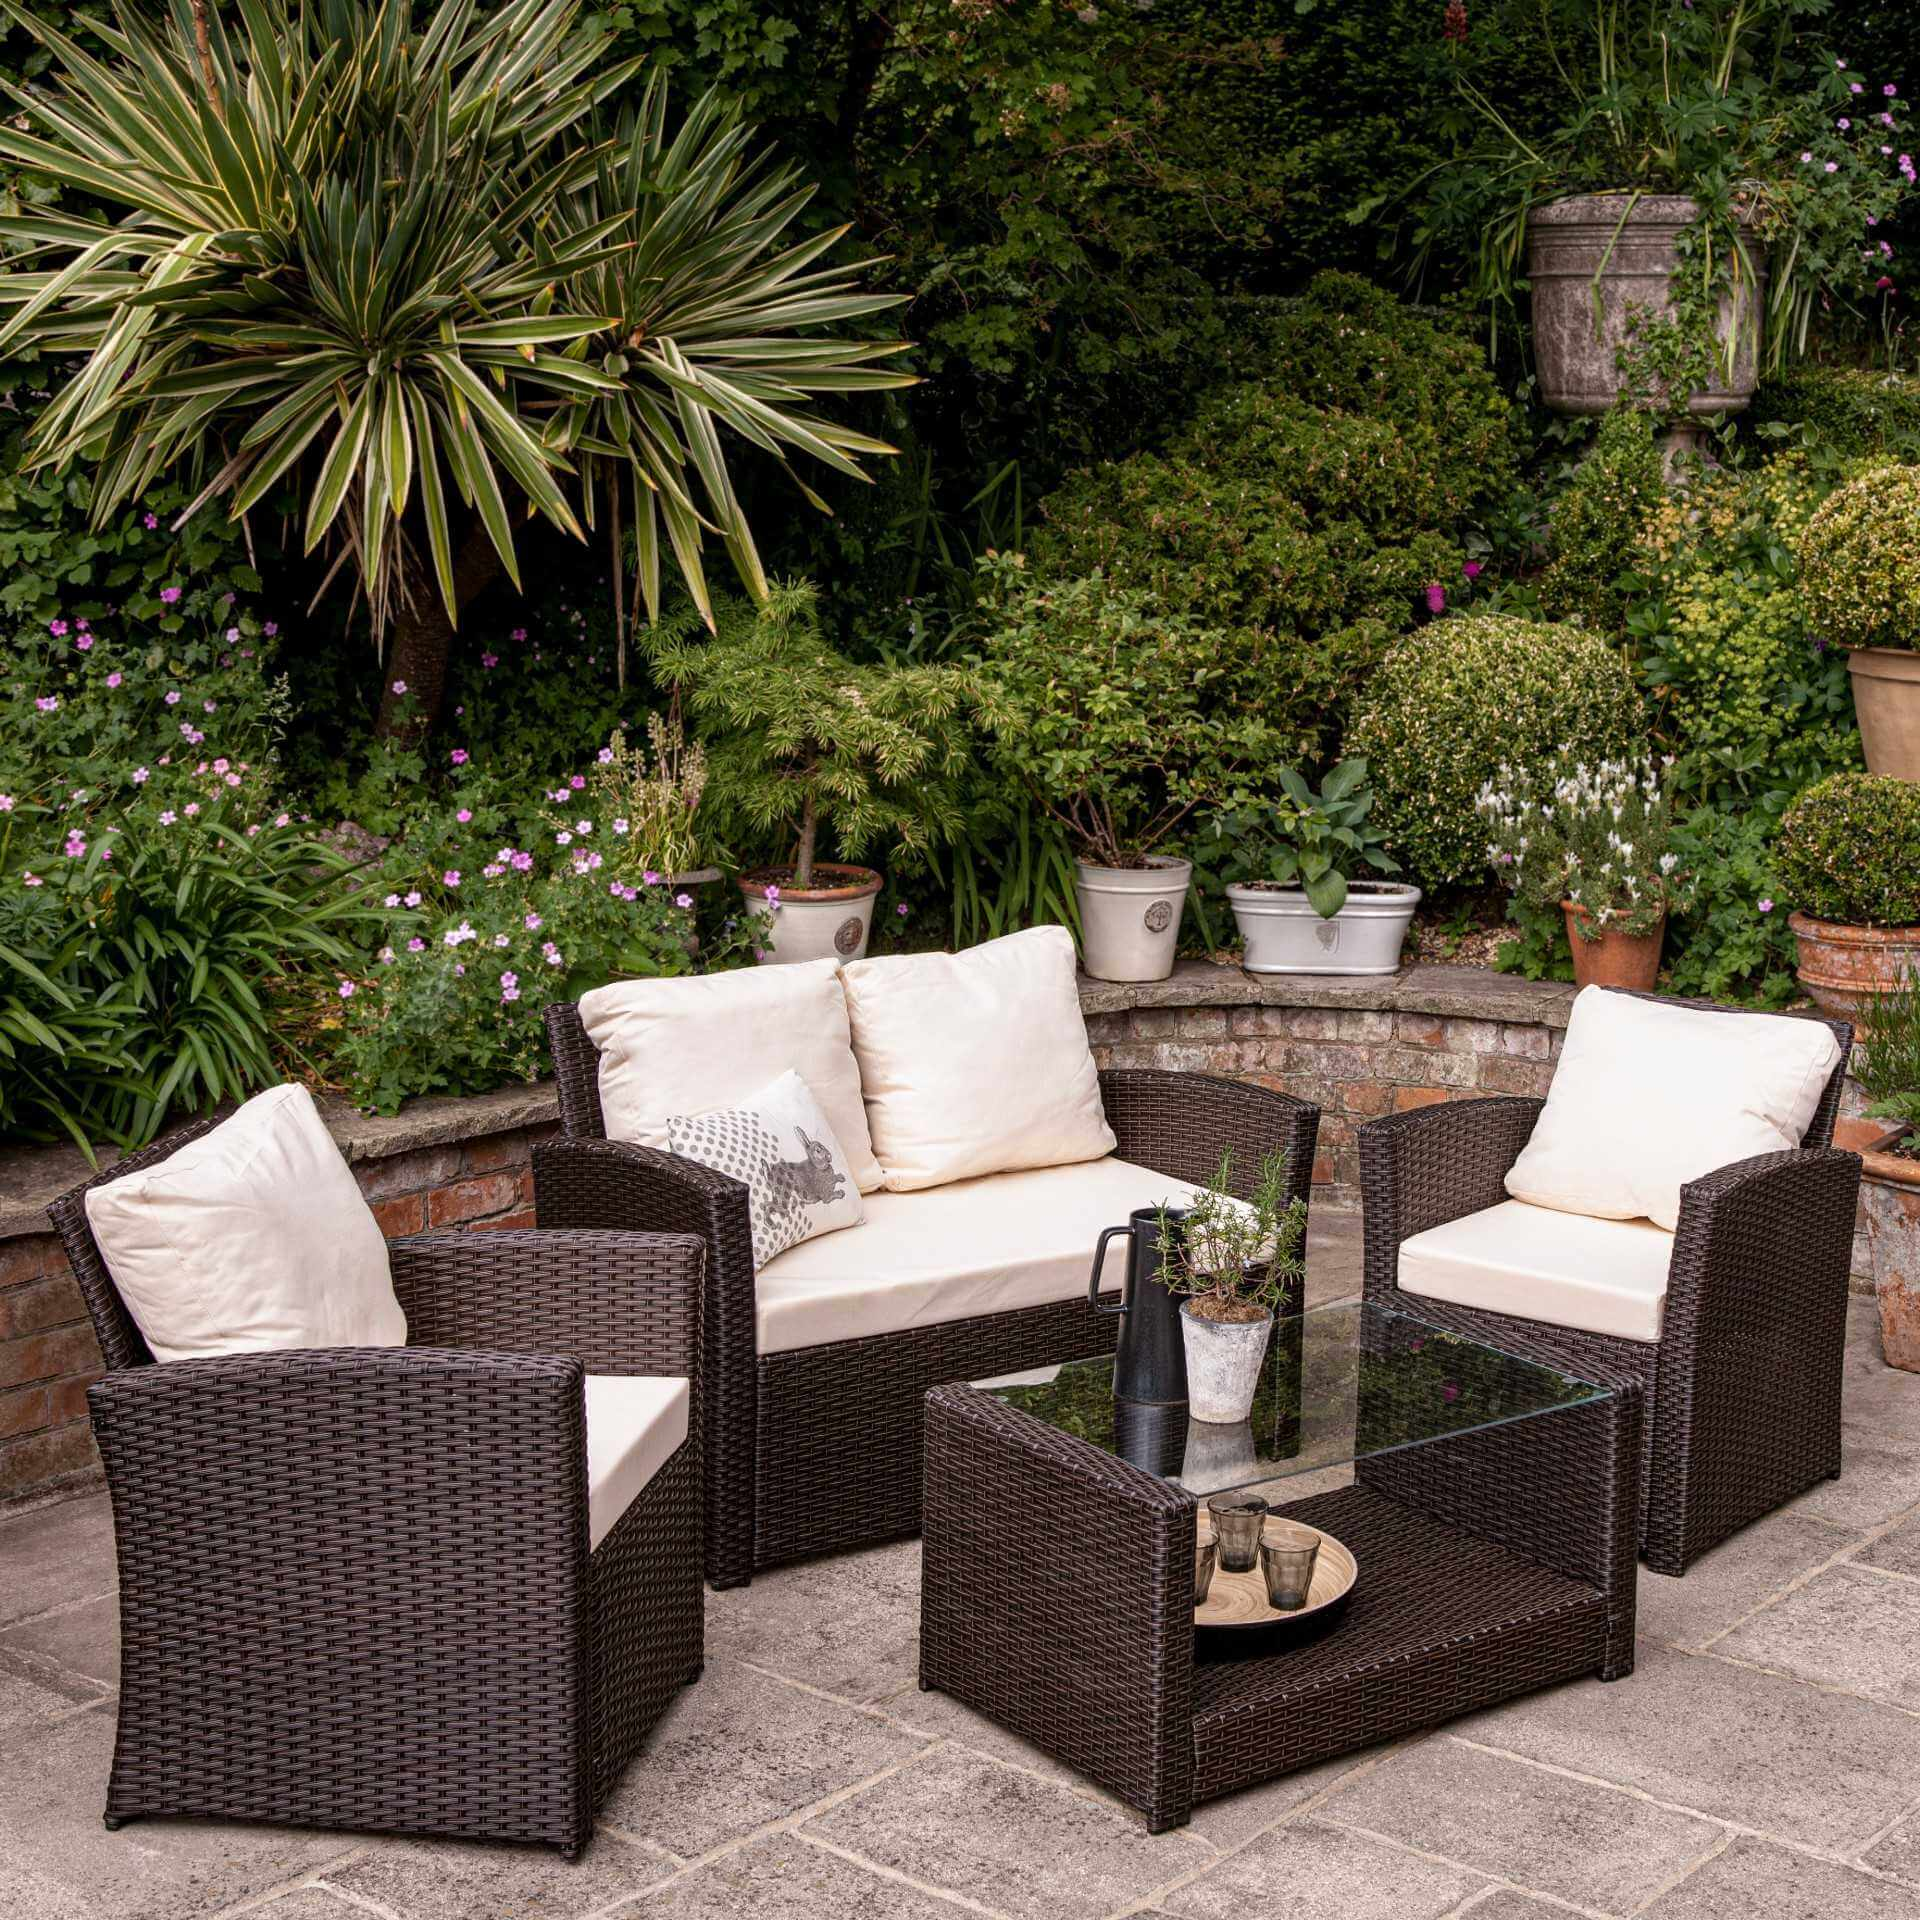 Rattan Garden Sofa Set - 4 Seater - Mixed Brown Weave